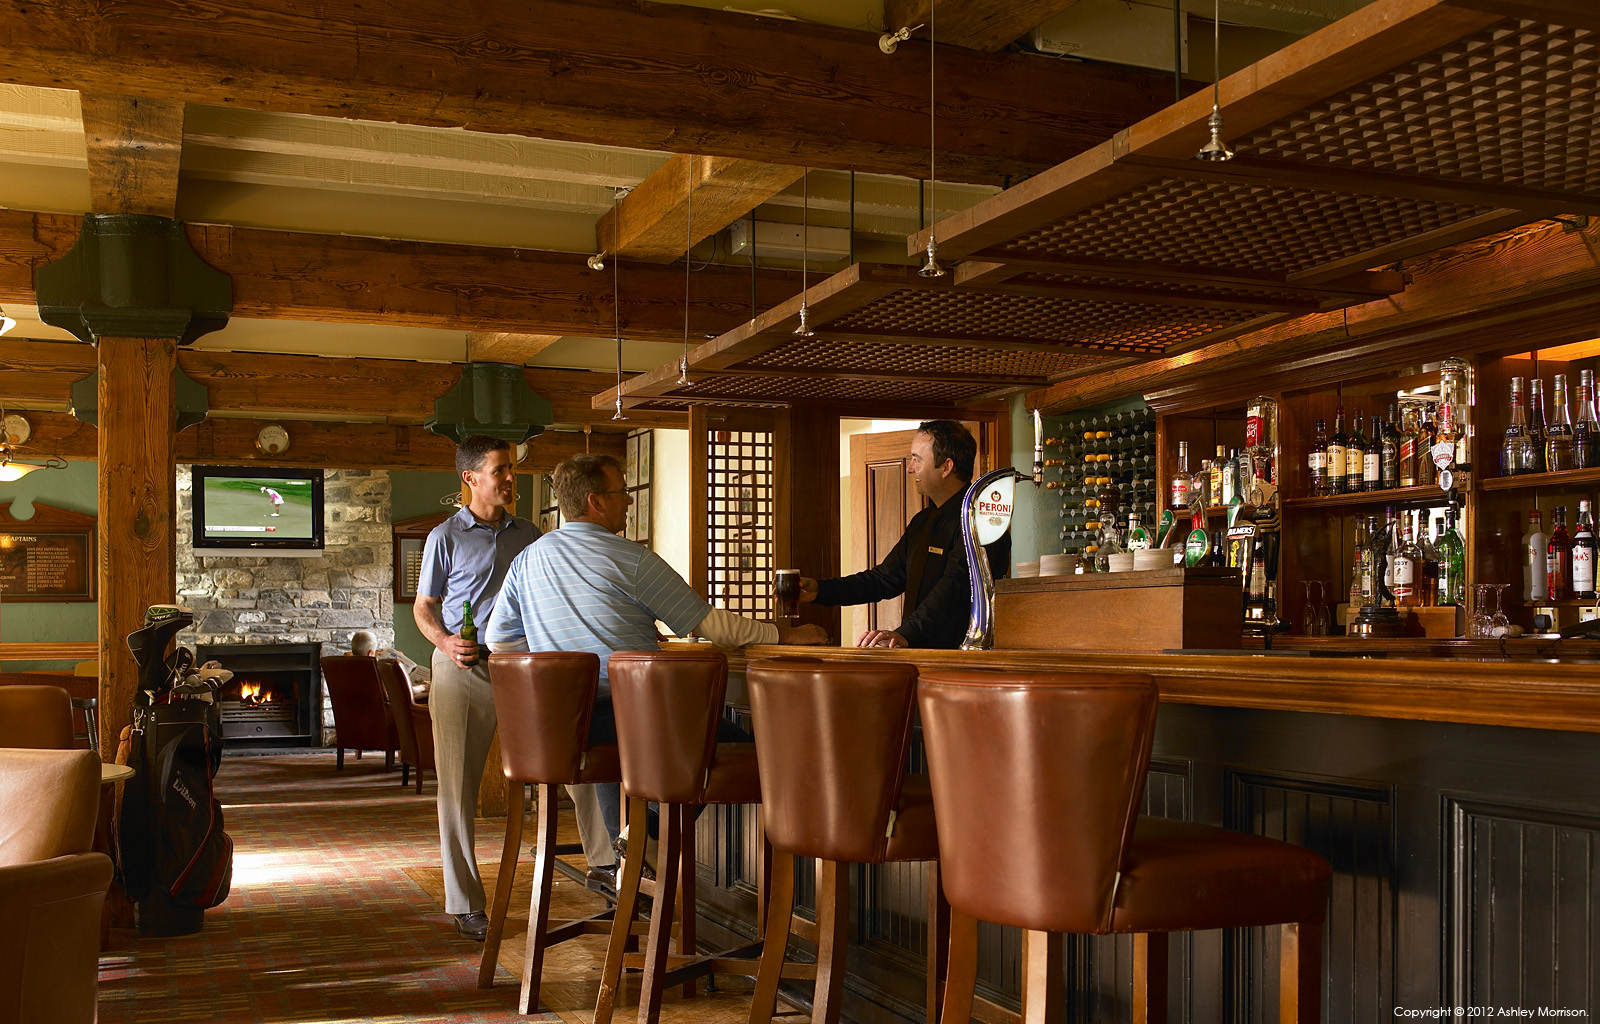 The Spike bar in the Clubhouse at Mount Juliet Country Estate in County Kilkenny by Ashley Morrison.